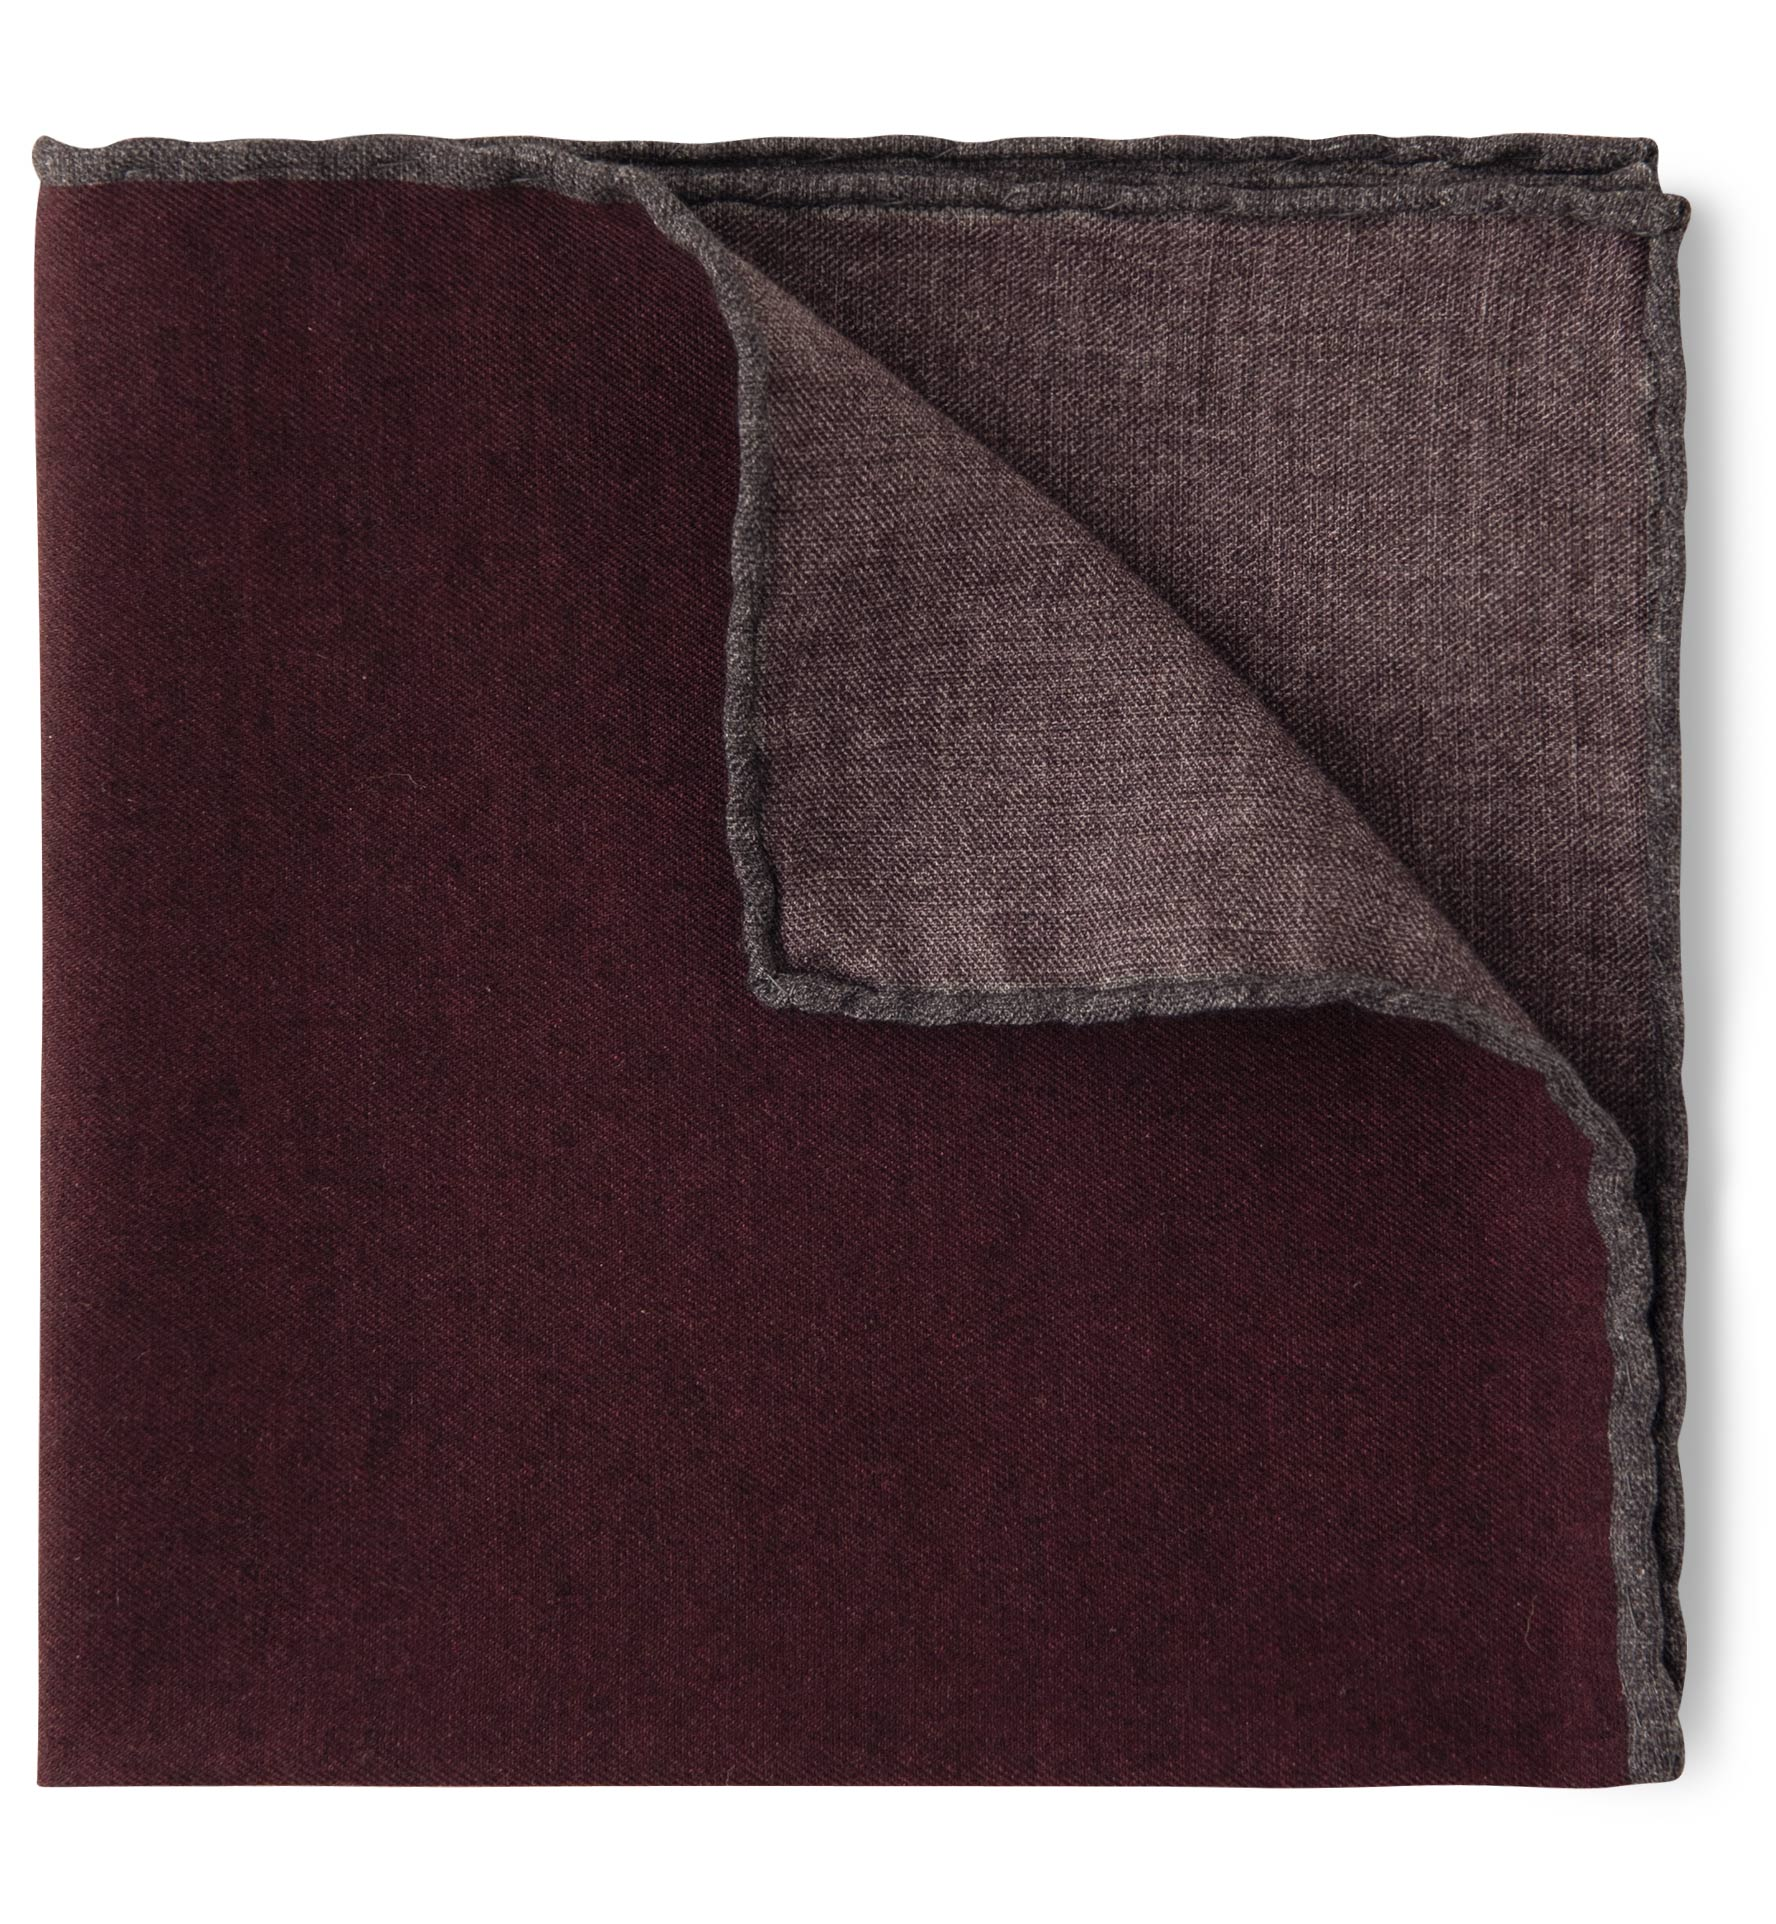 Zoom Image of Burgundy and Grey Pocket Square